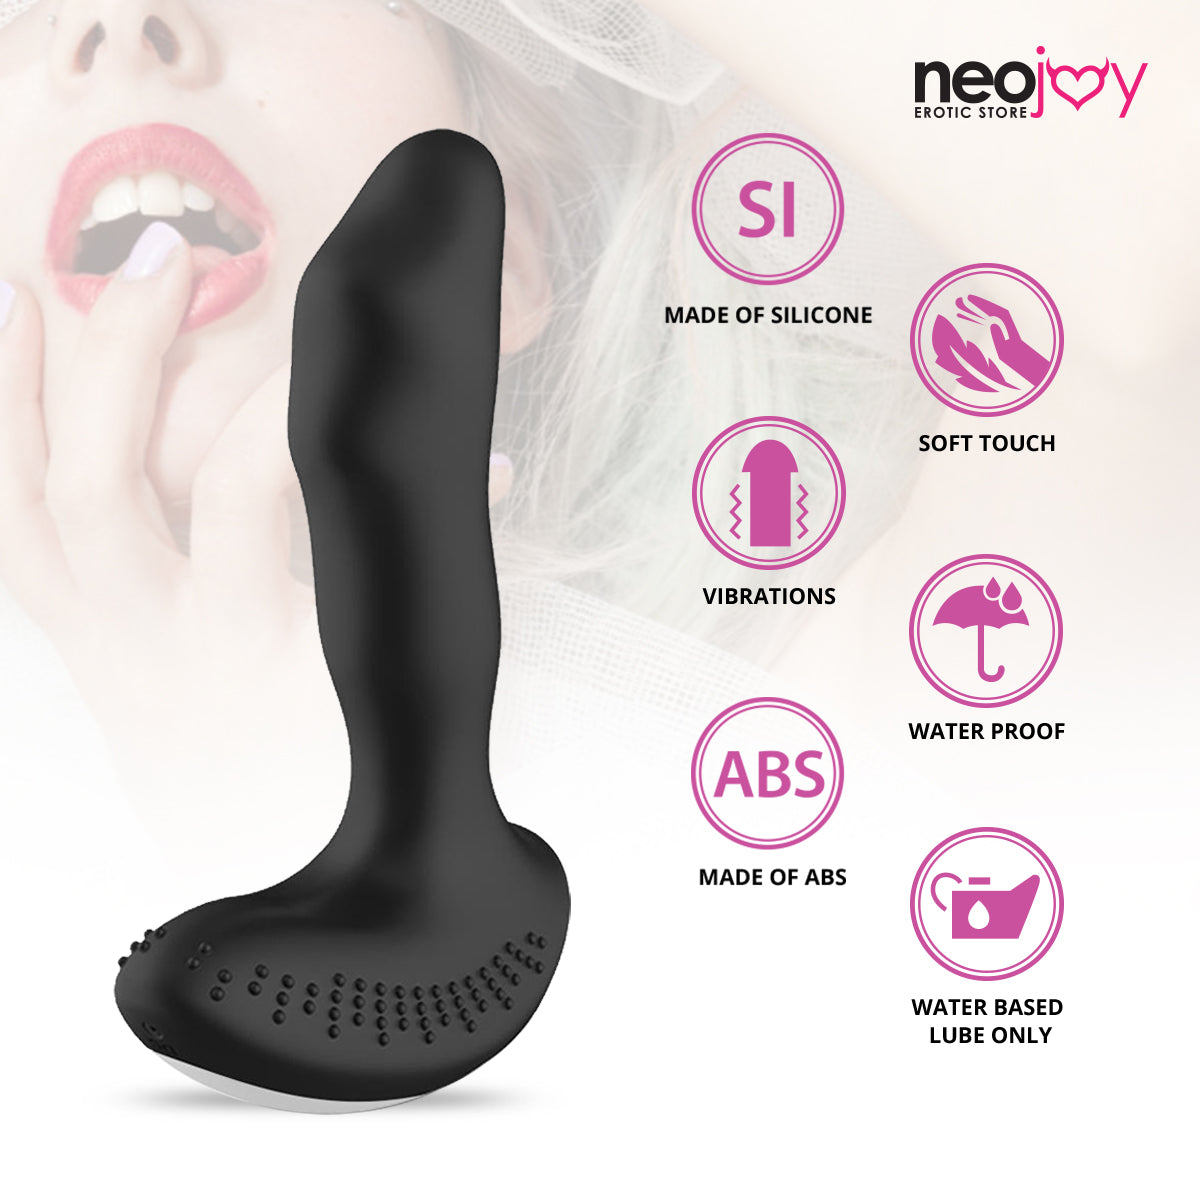 Neojoy Prostate Buzz - Silicone P-Spot Massager - App-Controlled Prostate Vibrator for Men - Anal Sex Toy